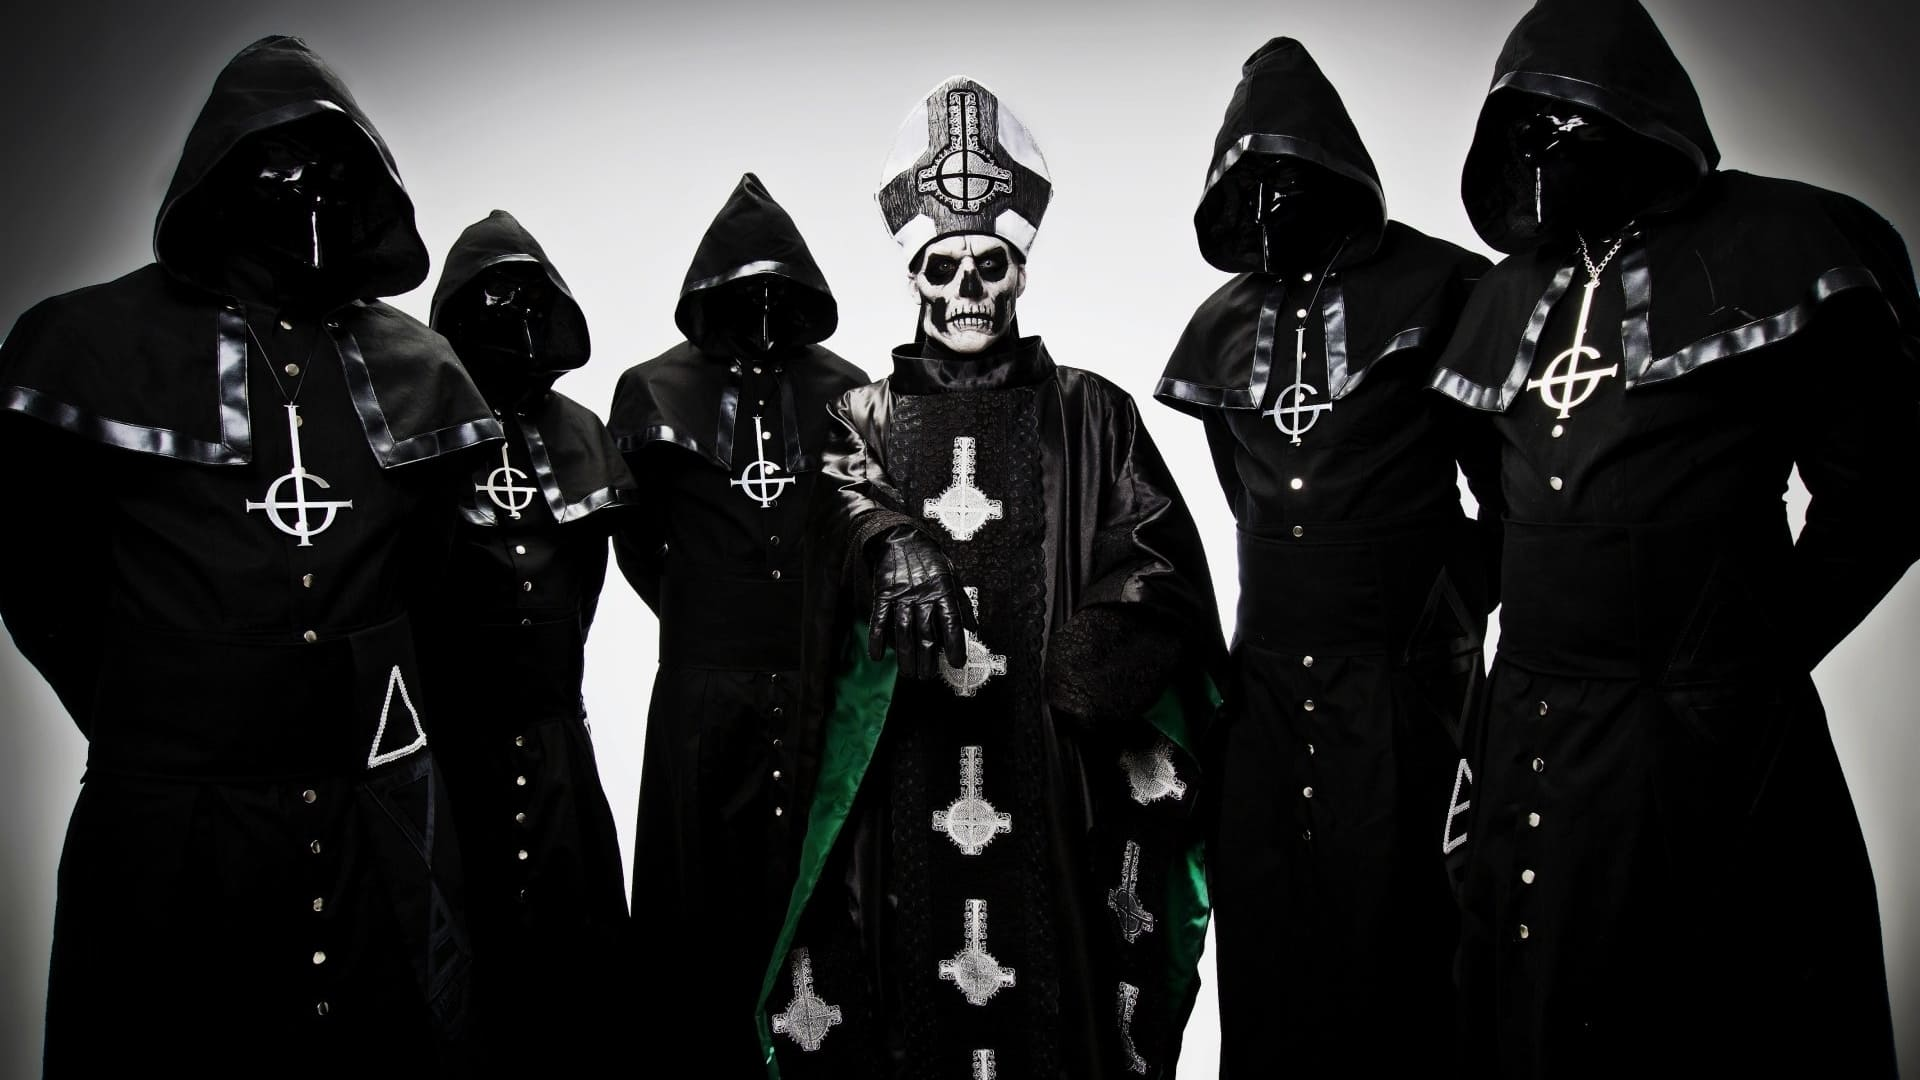 Ghost band pictures